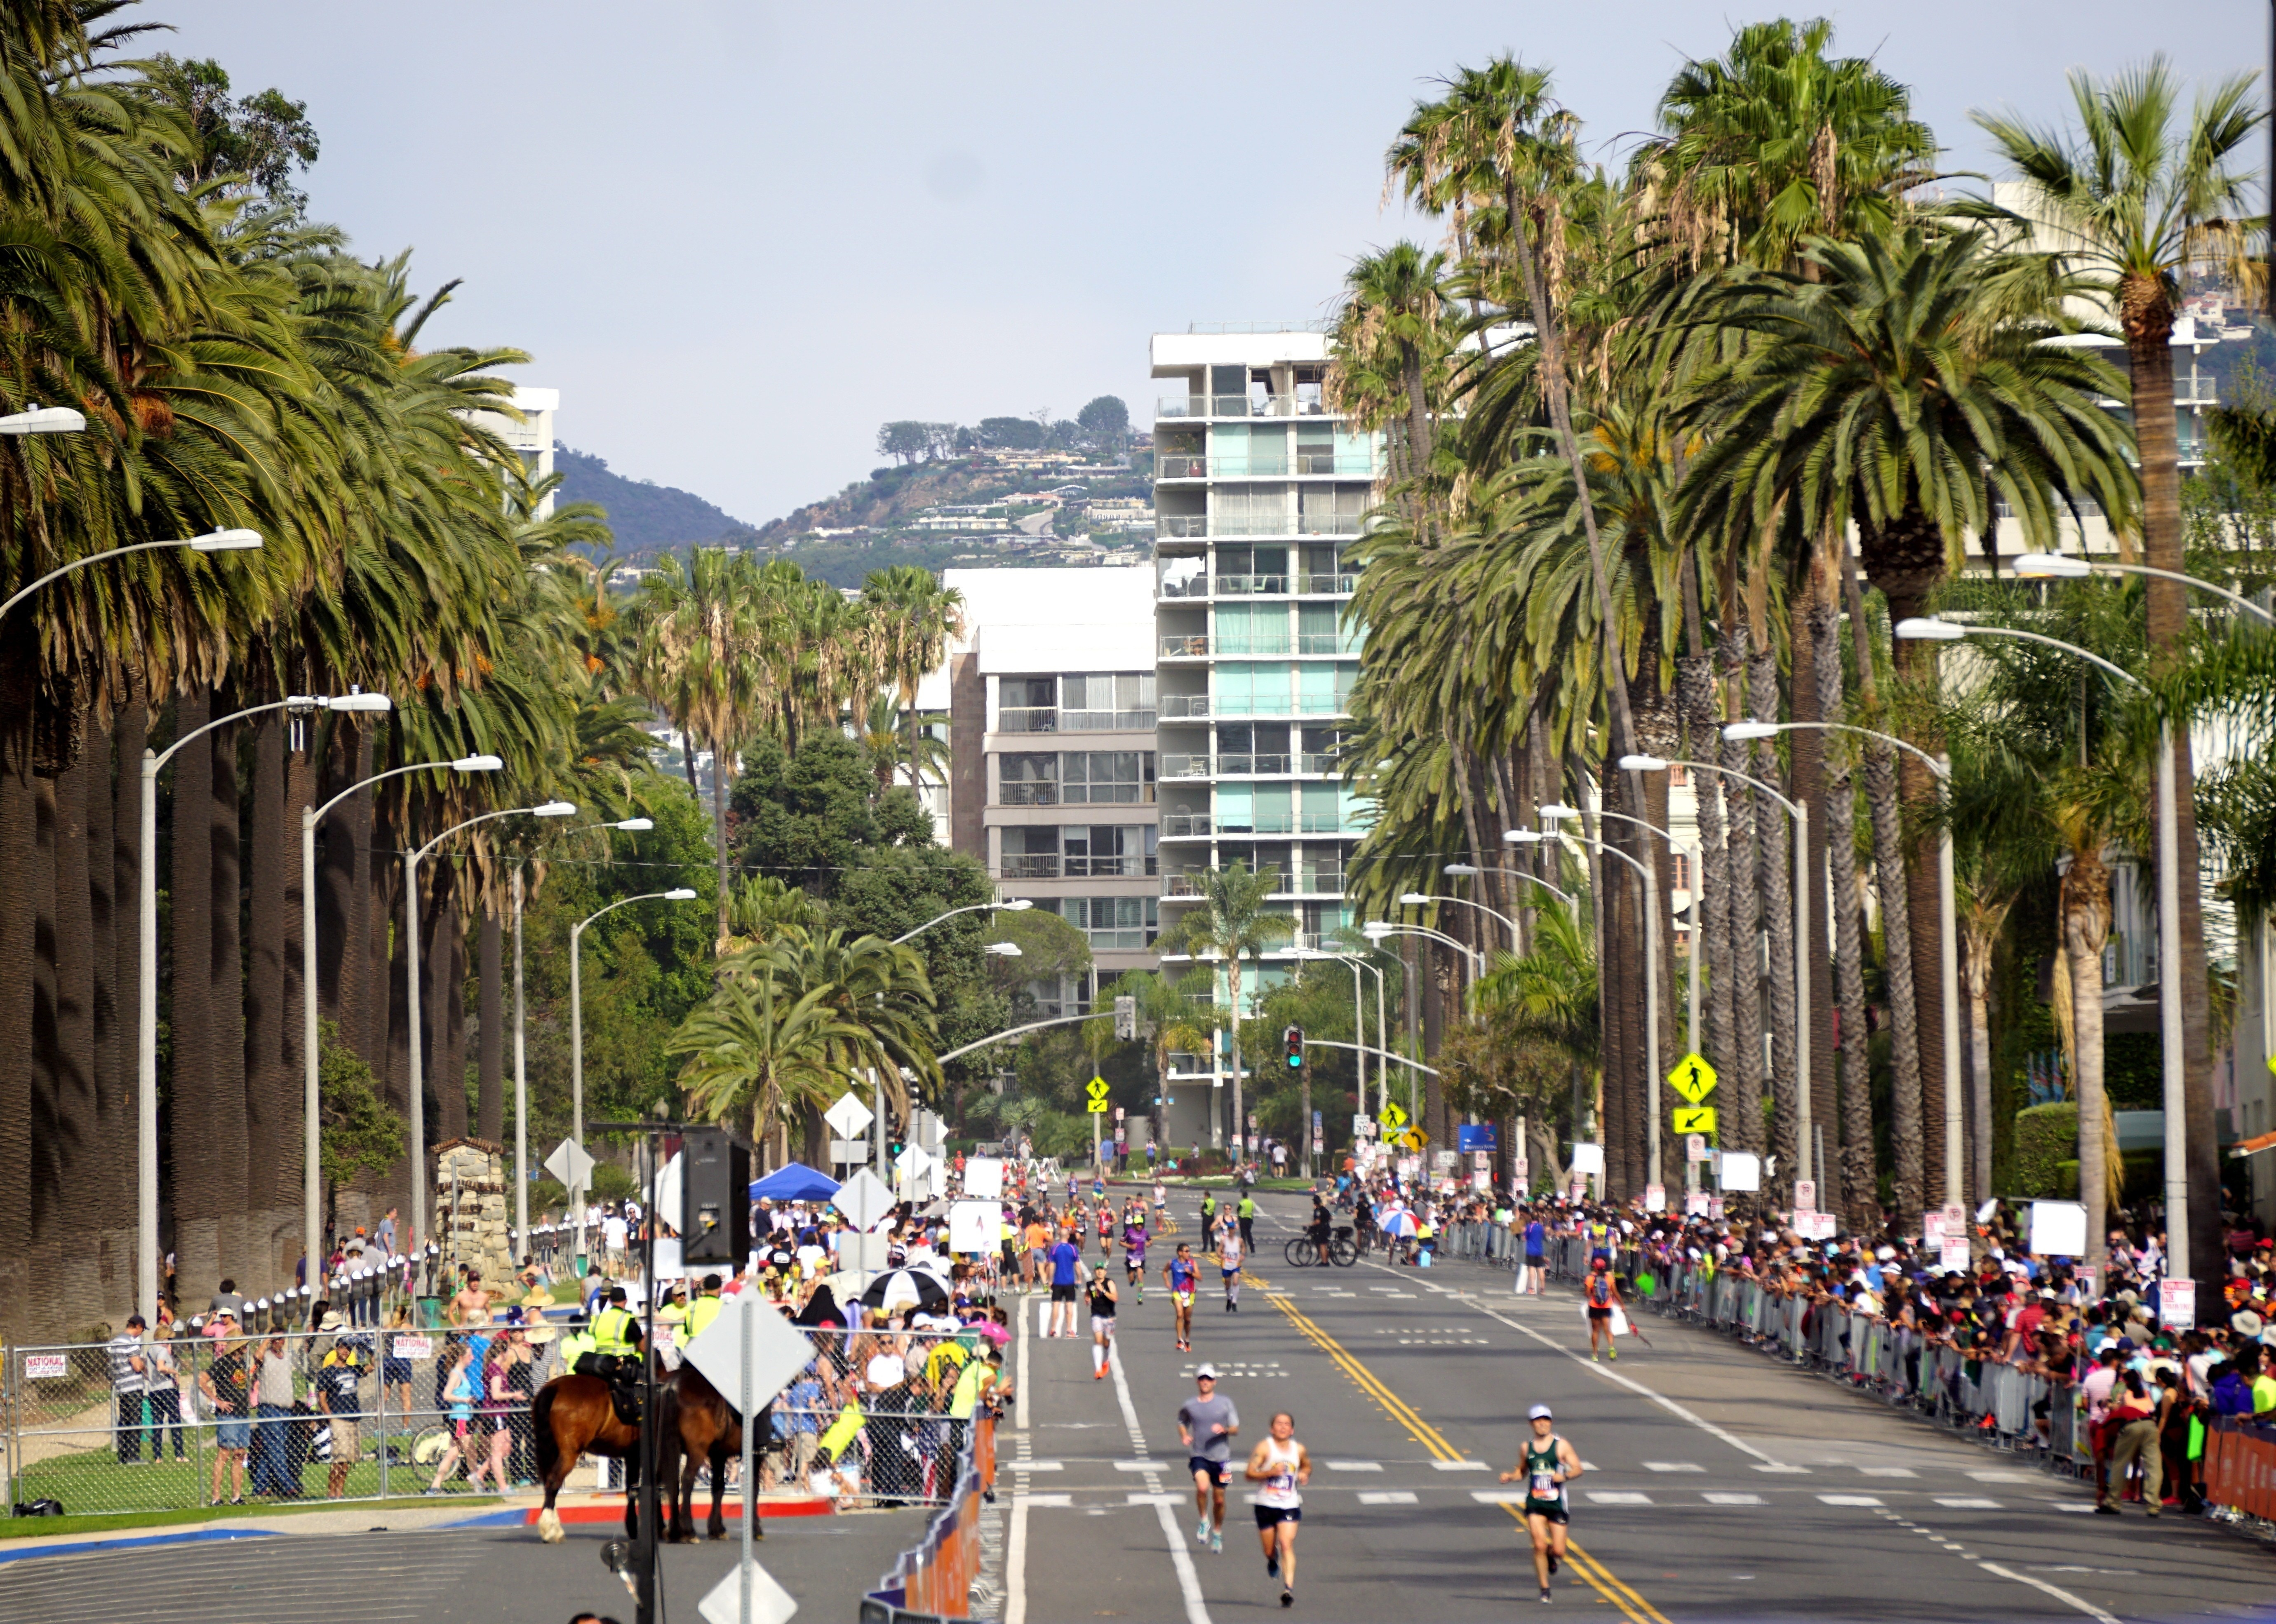 The 2015 Los Angeles Marathon held in Los Angeles on March 15, 2015